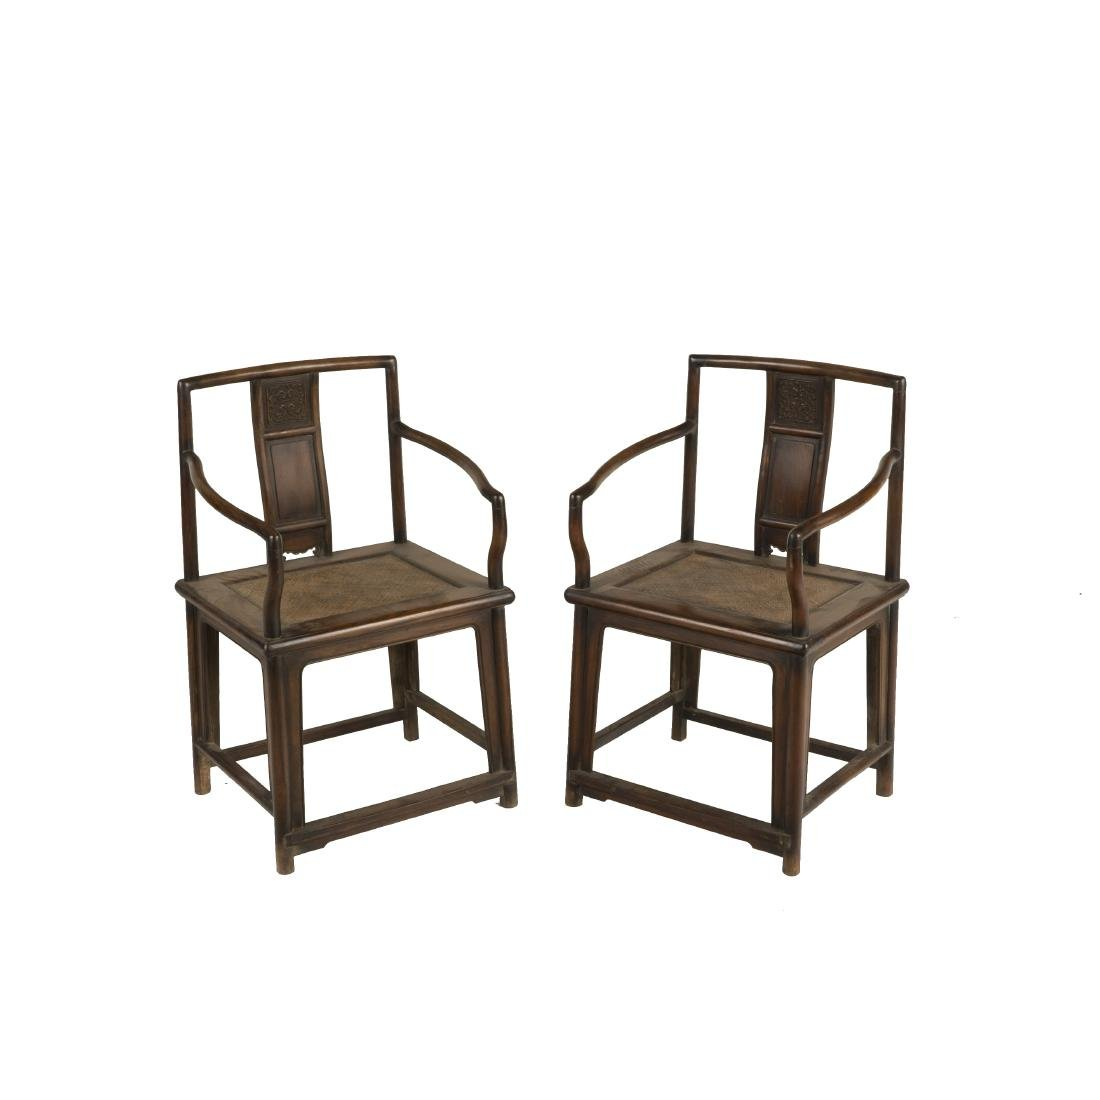 PAIR OF 18TH C HUANGHUALI ROSE ARMCHAIRS (MEIGUI YI)